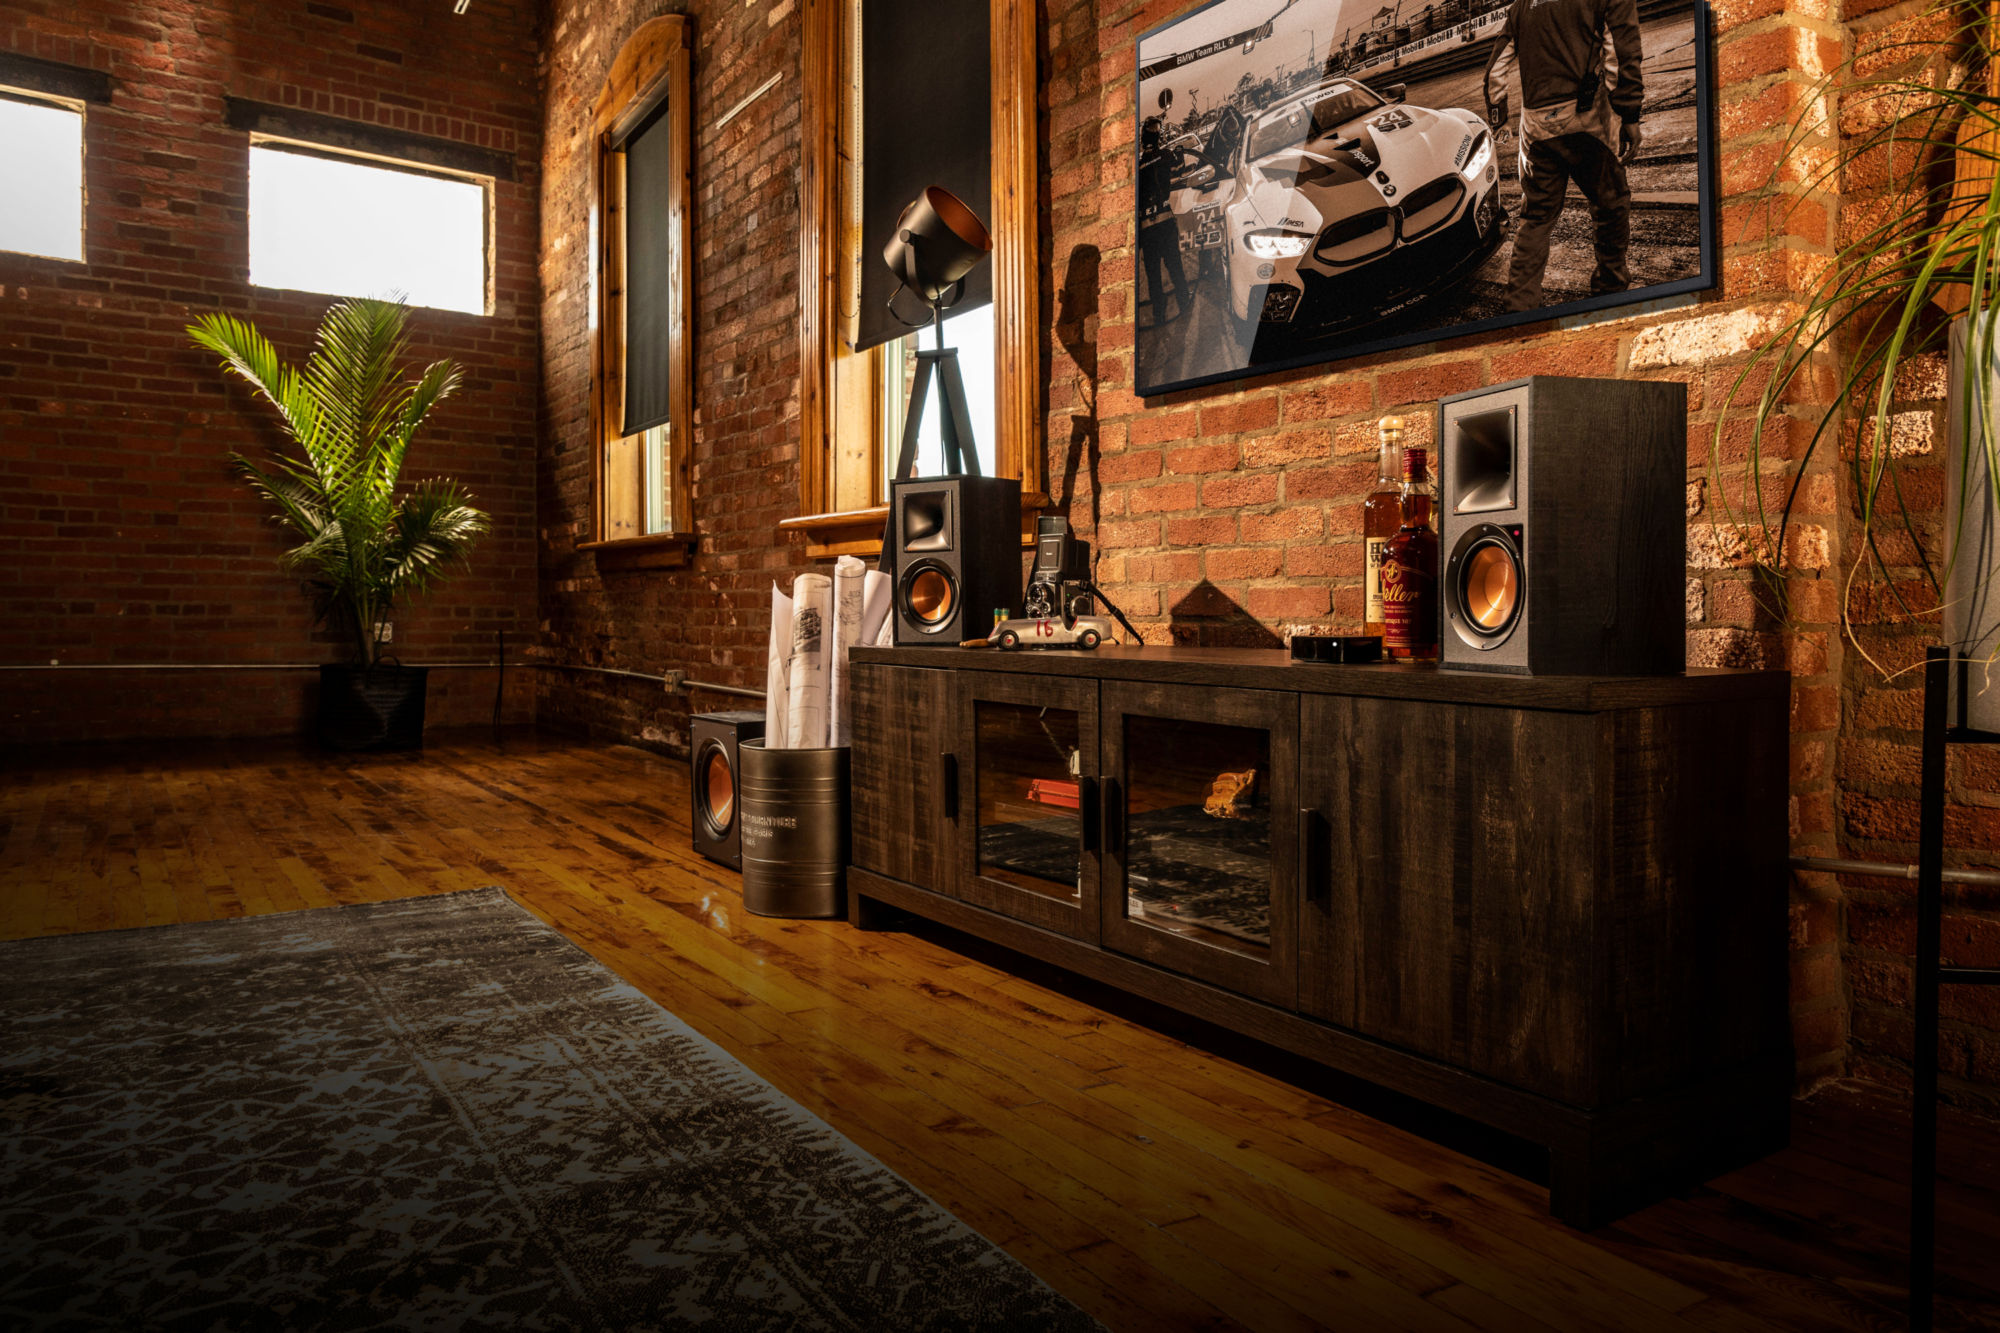 Klipsch Reference Powered Speakers on a wooden cabinet